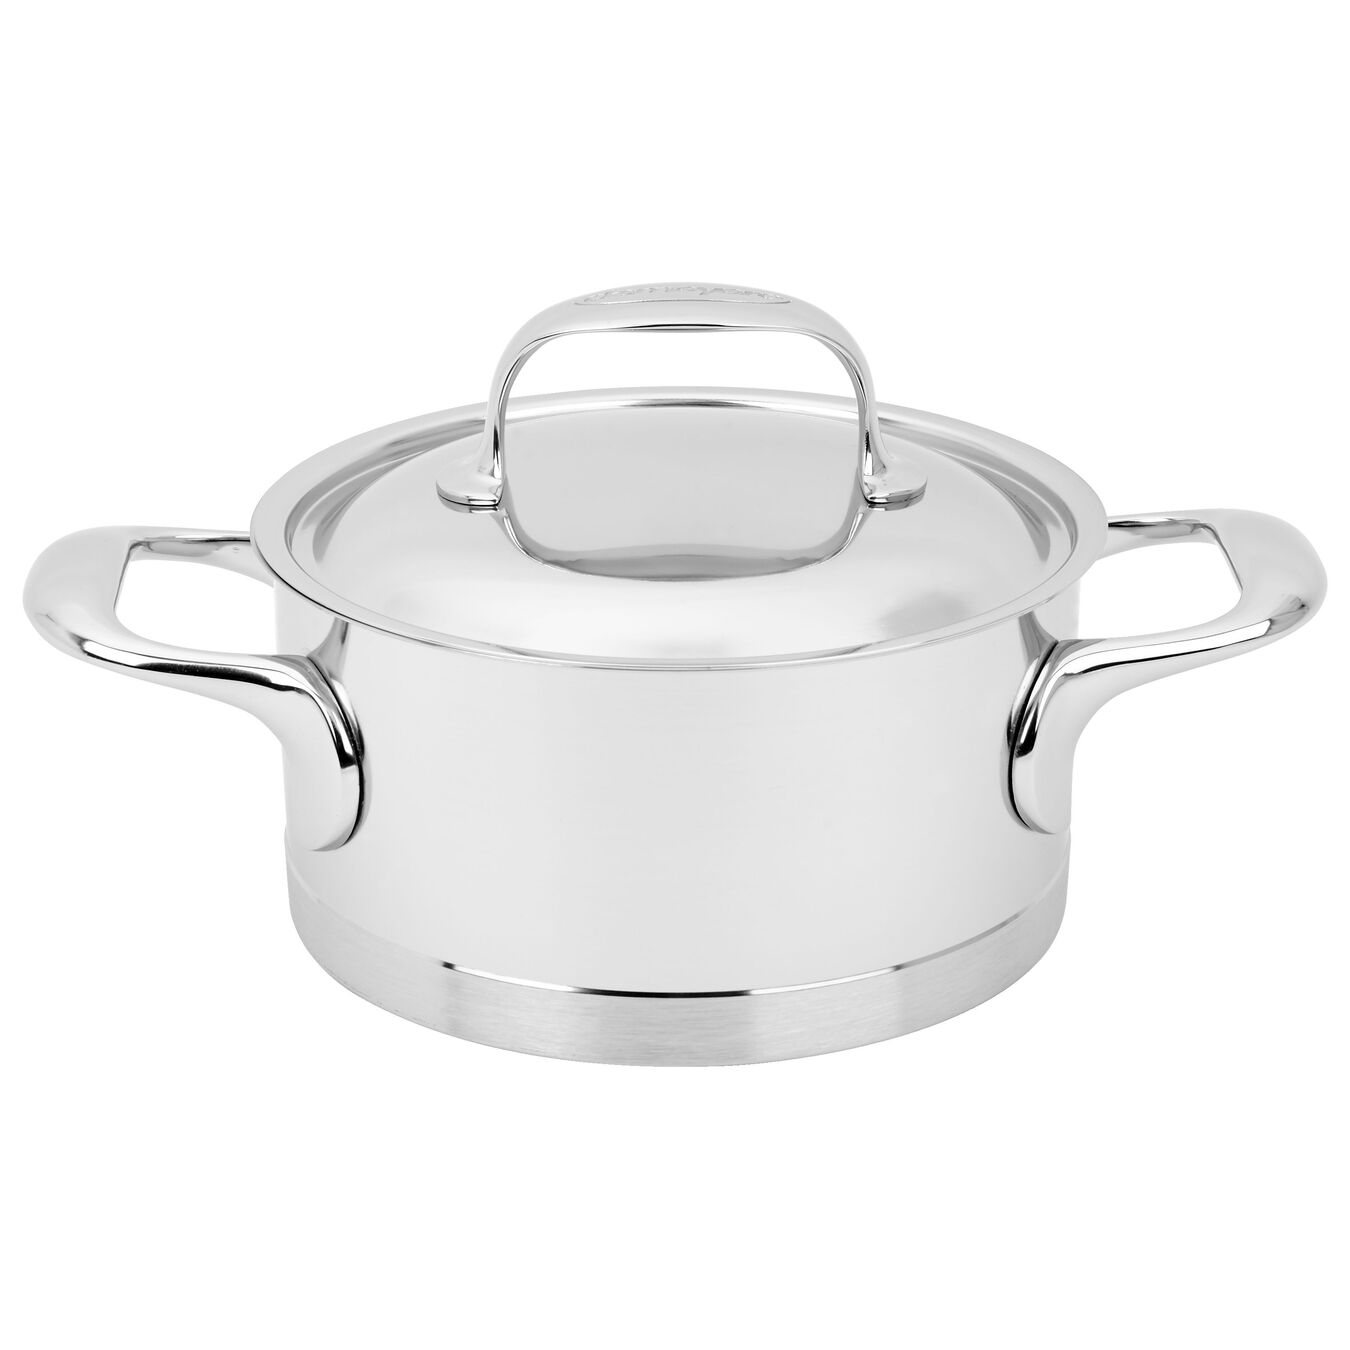 1,5 l 18/10 Stainless Steel Faitout with lid,,large 2